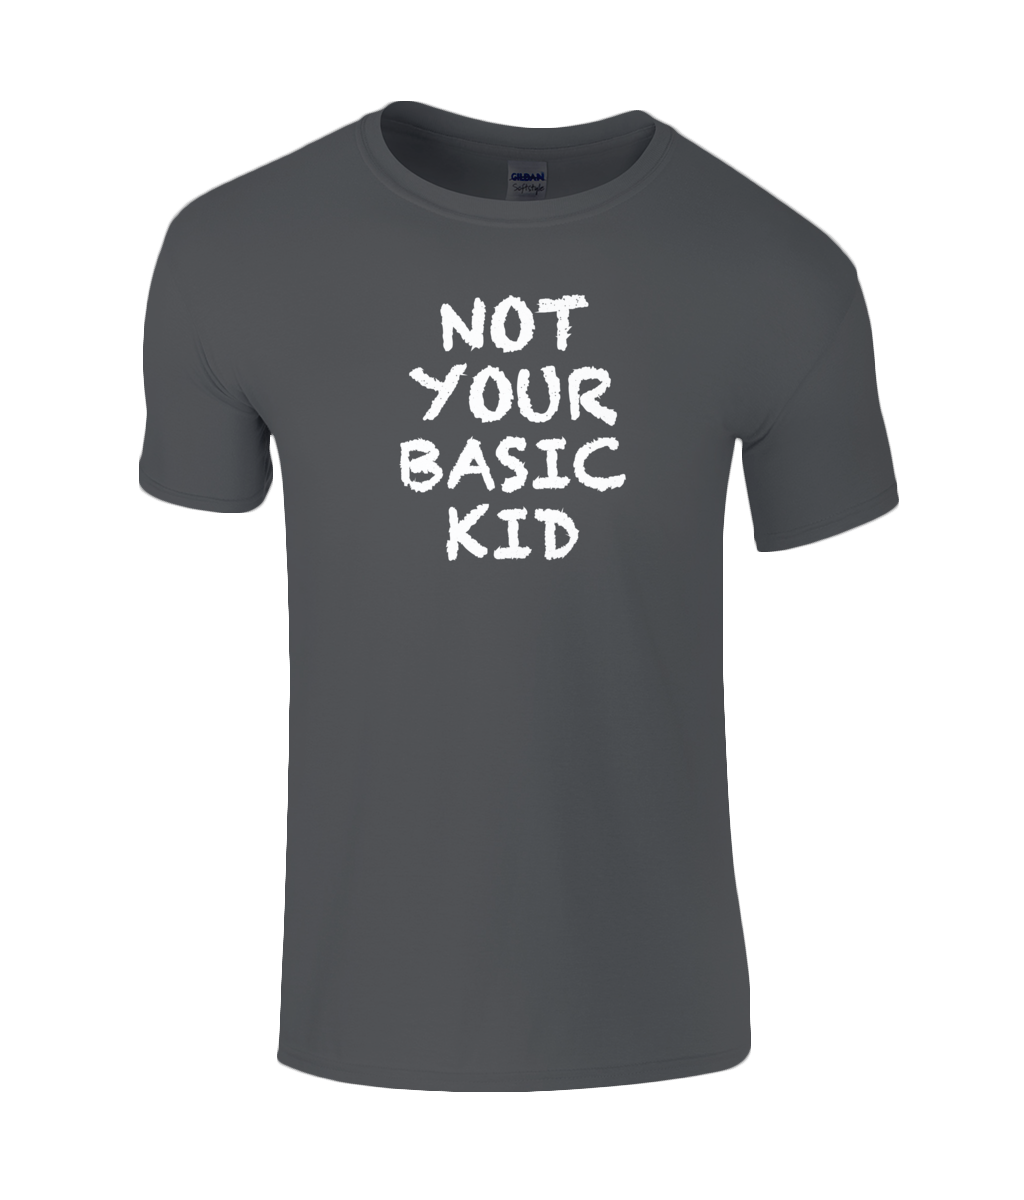 Not Basic Kids T-Shirt